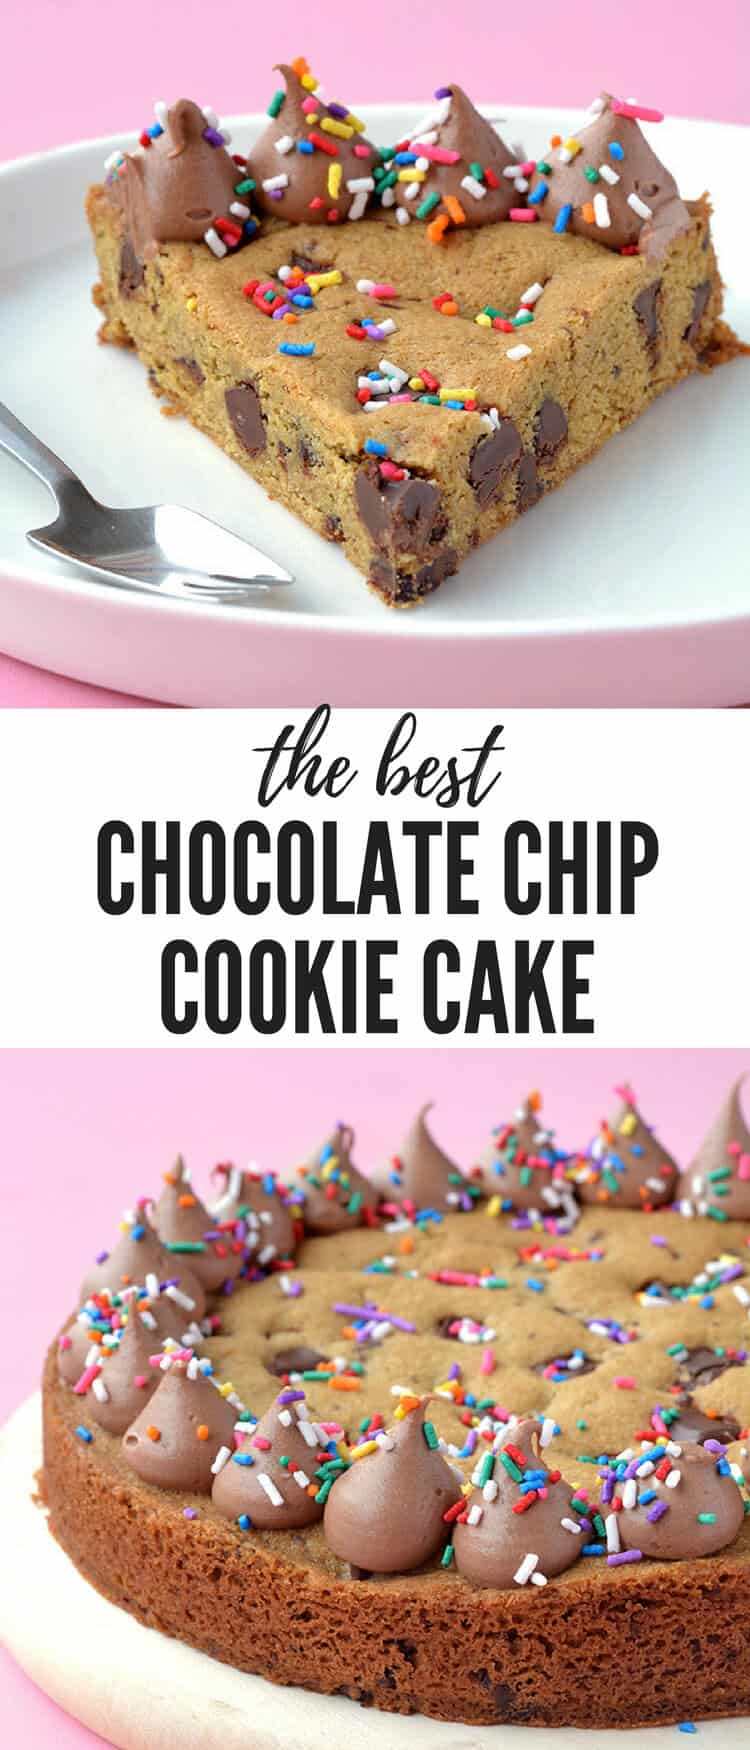 You'll LOVE this gorgeous Chocolate Chip Cookie Cake! Topped with creamy chocolate frosting, it's perfect for your next birthday or celebration. Recipe on sweetestmenu.com #cookie #cake #dessert #birthday #sprinkles